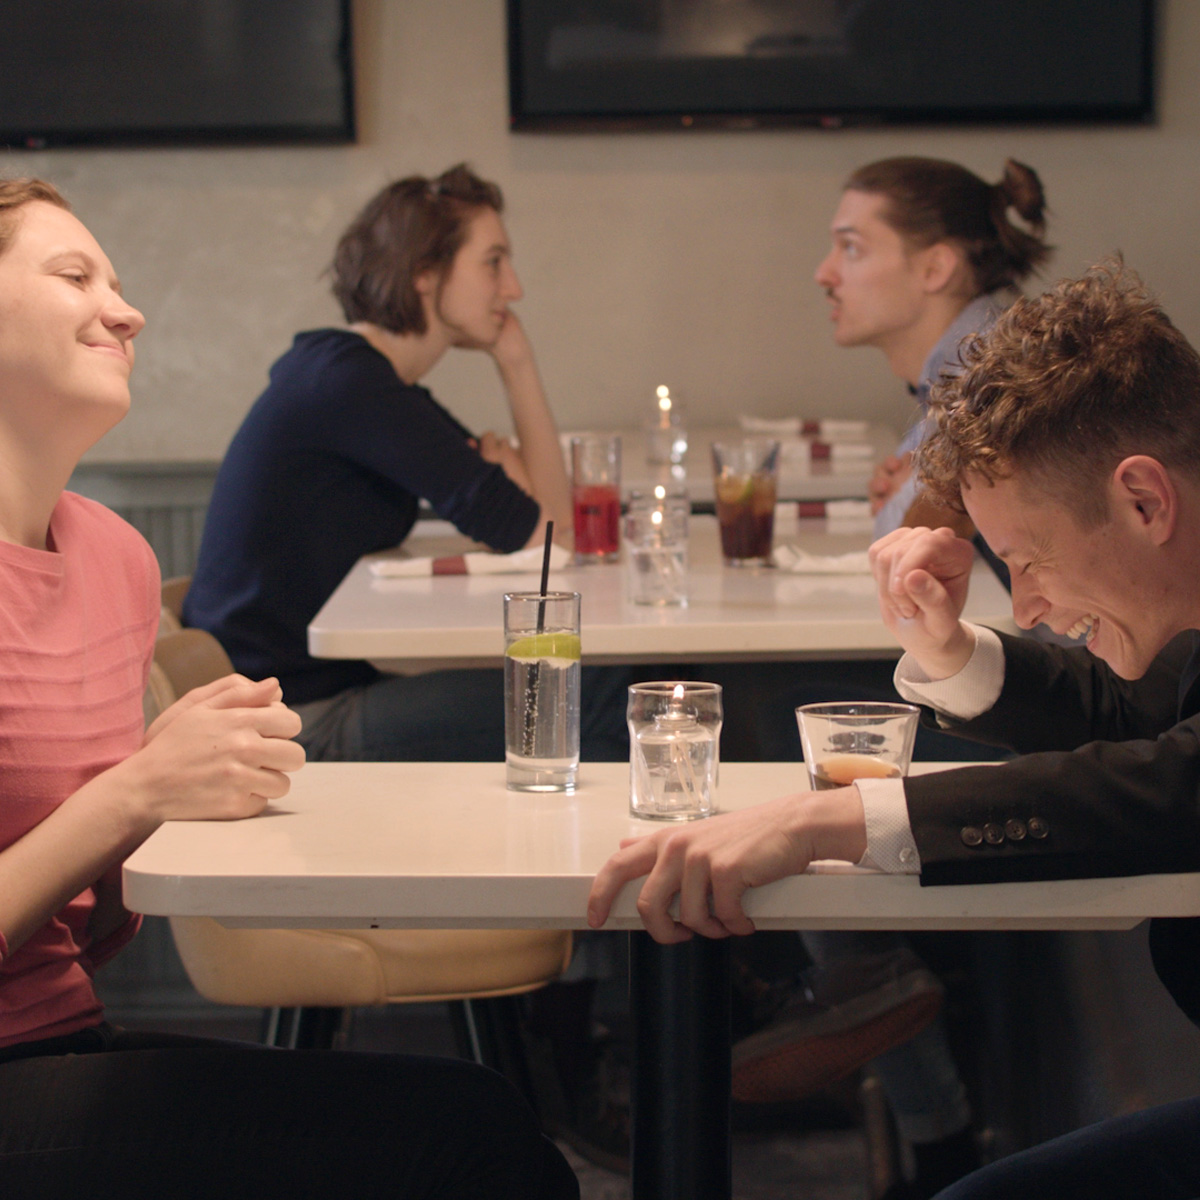 Restaurant Stories: The Date